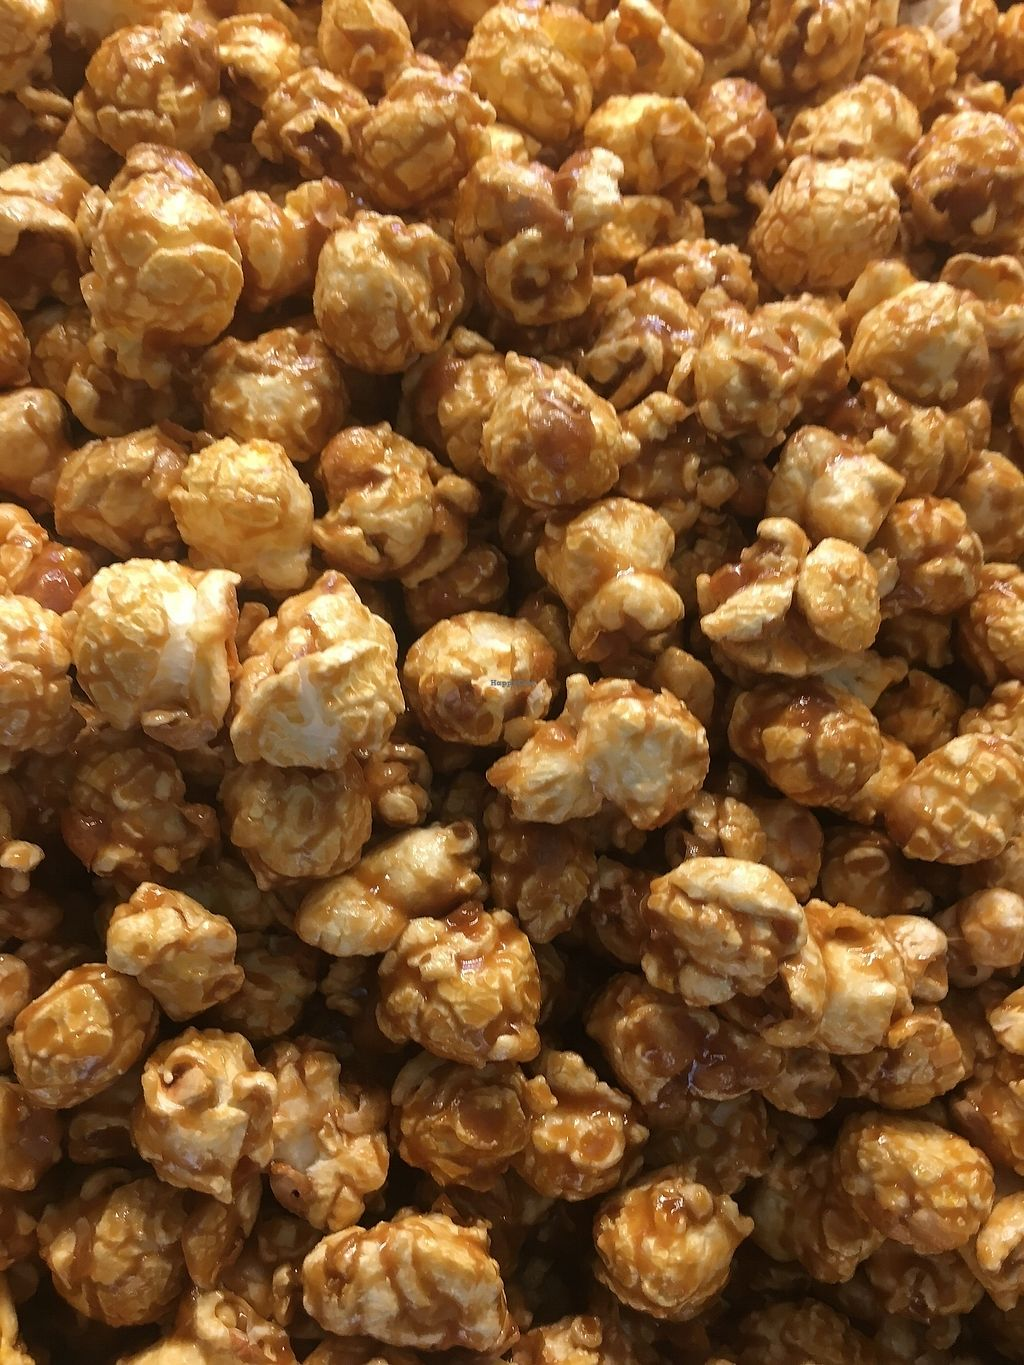 "Photo of Sweet-E's Gourmet Popcorn  by <a href=""/members/profile/JuliaSmithEastby"">JuliaSmithEastby</a> <br/>Candied Caramel Popcorn - No Butter; Like Cracker Jack except BETTER and no nuts <br/> July 12, 2017  - <a href='/contact/abuse/image/95708/279543'>Report</a>"